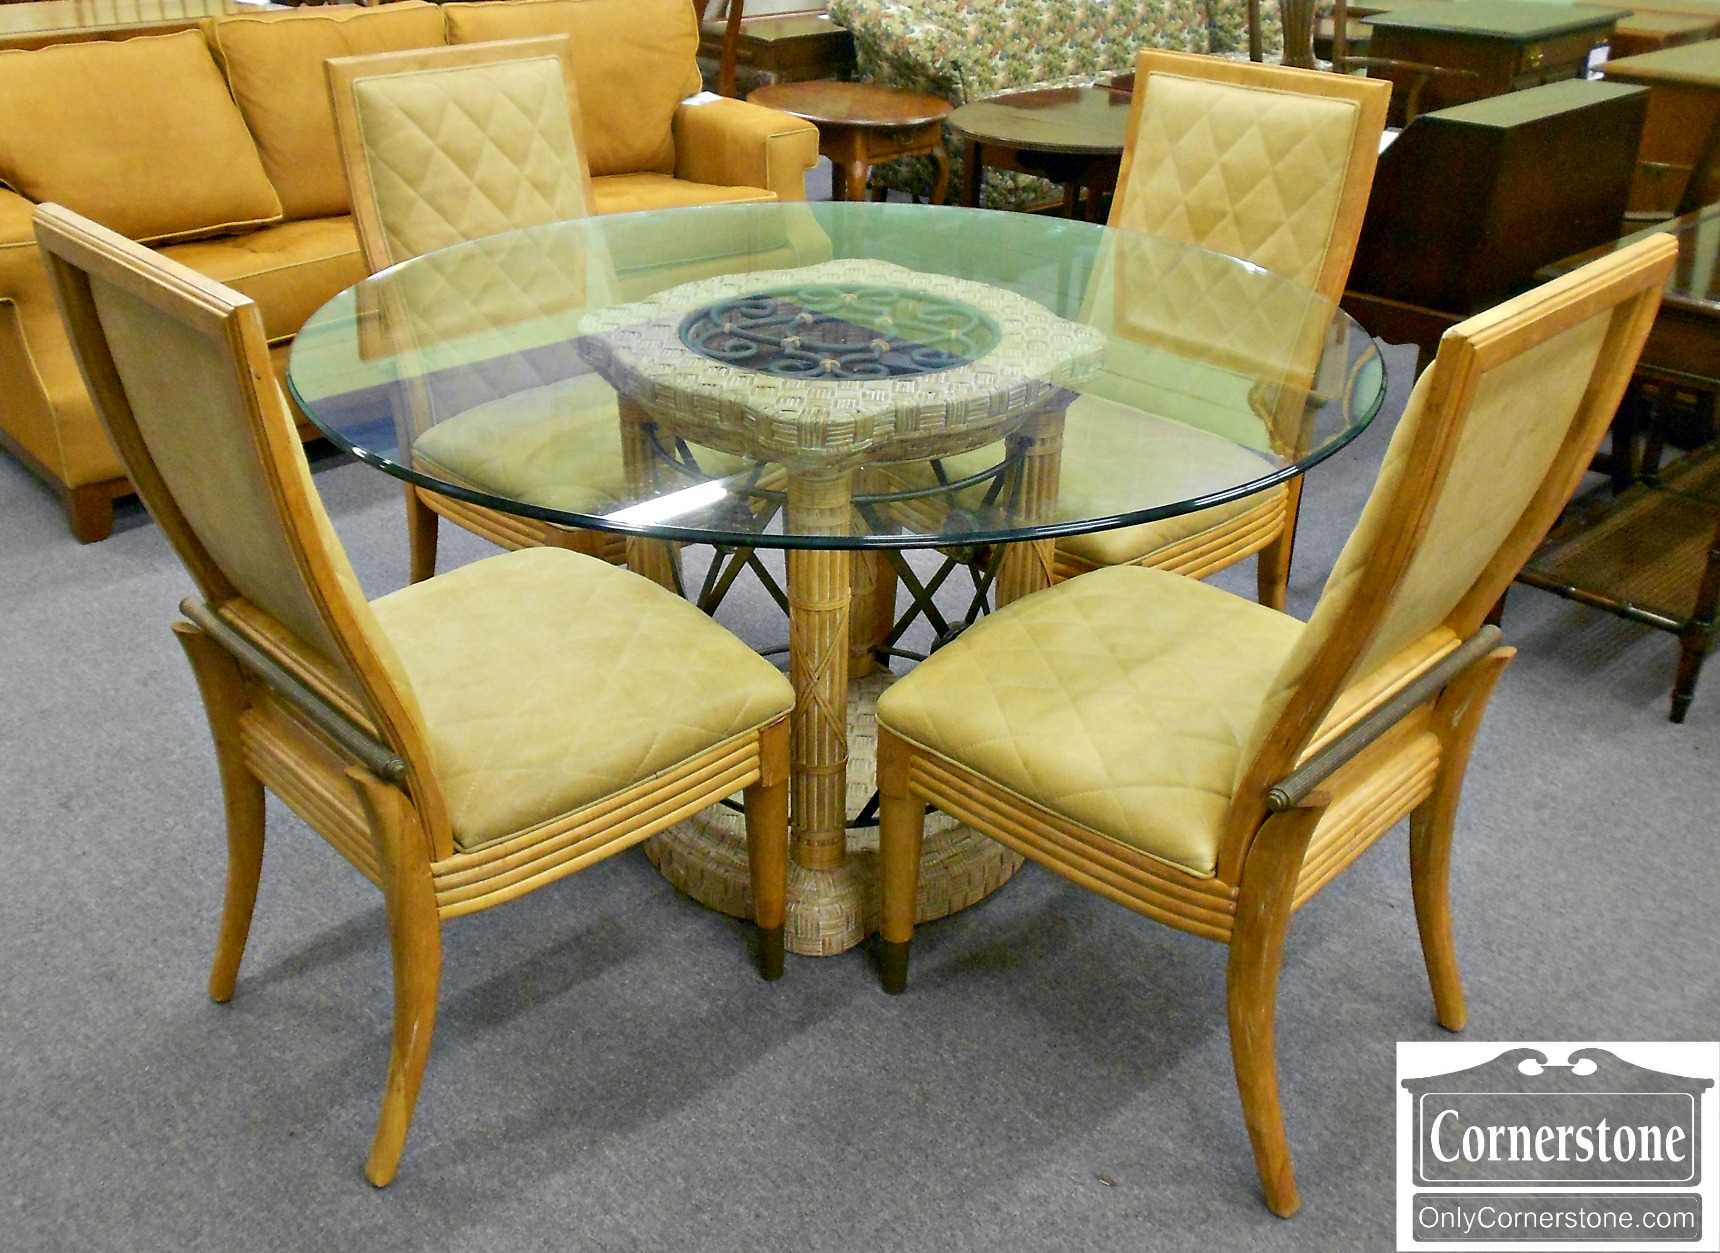 3959-912 Century Glass Top Table and 4 Chairs